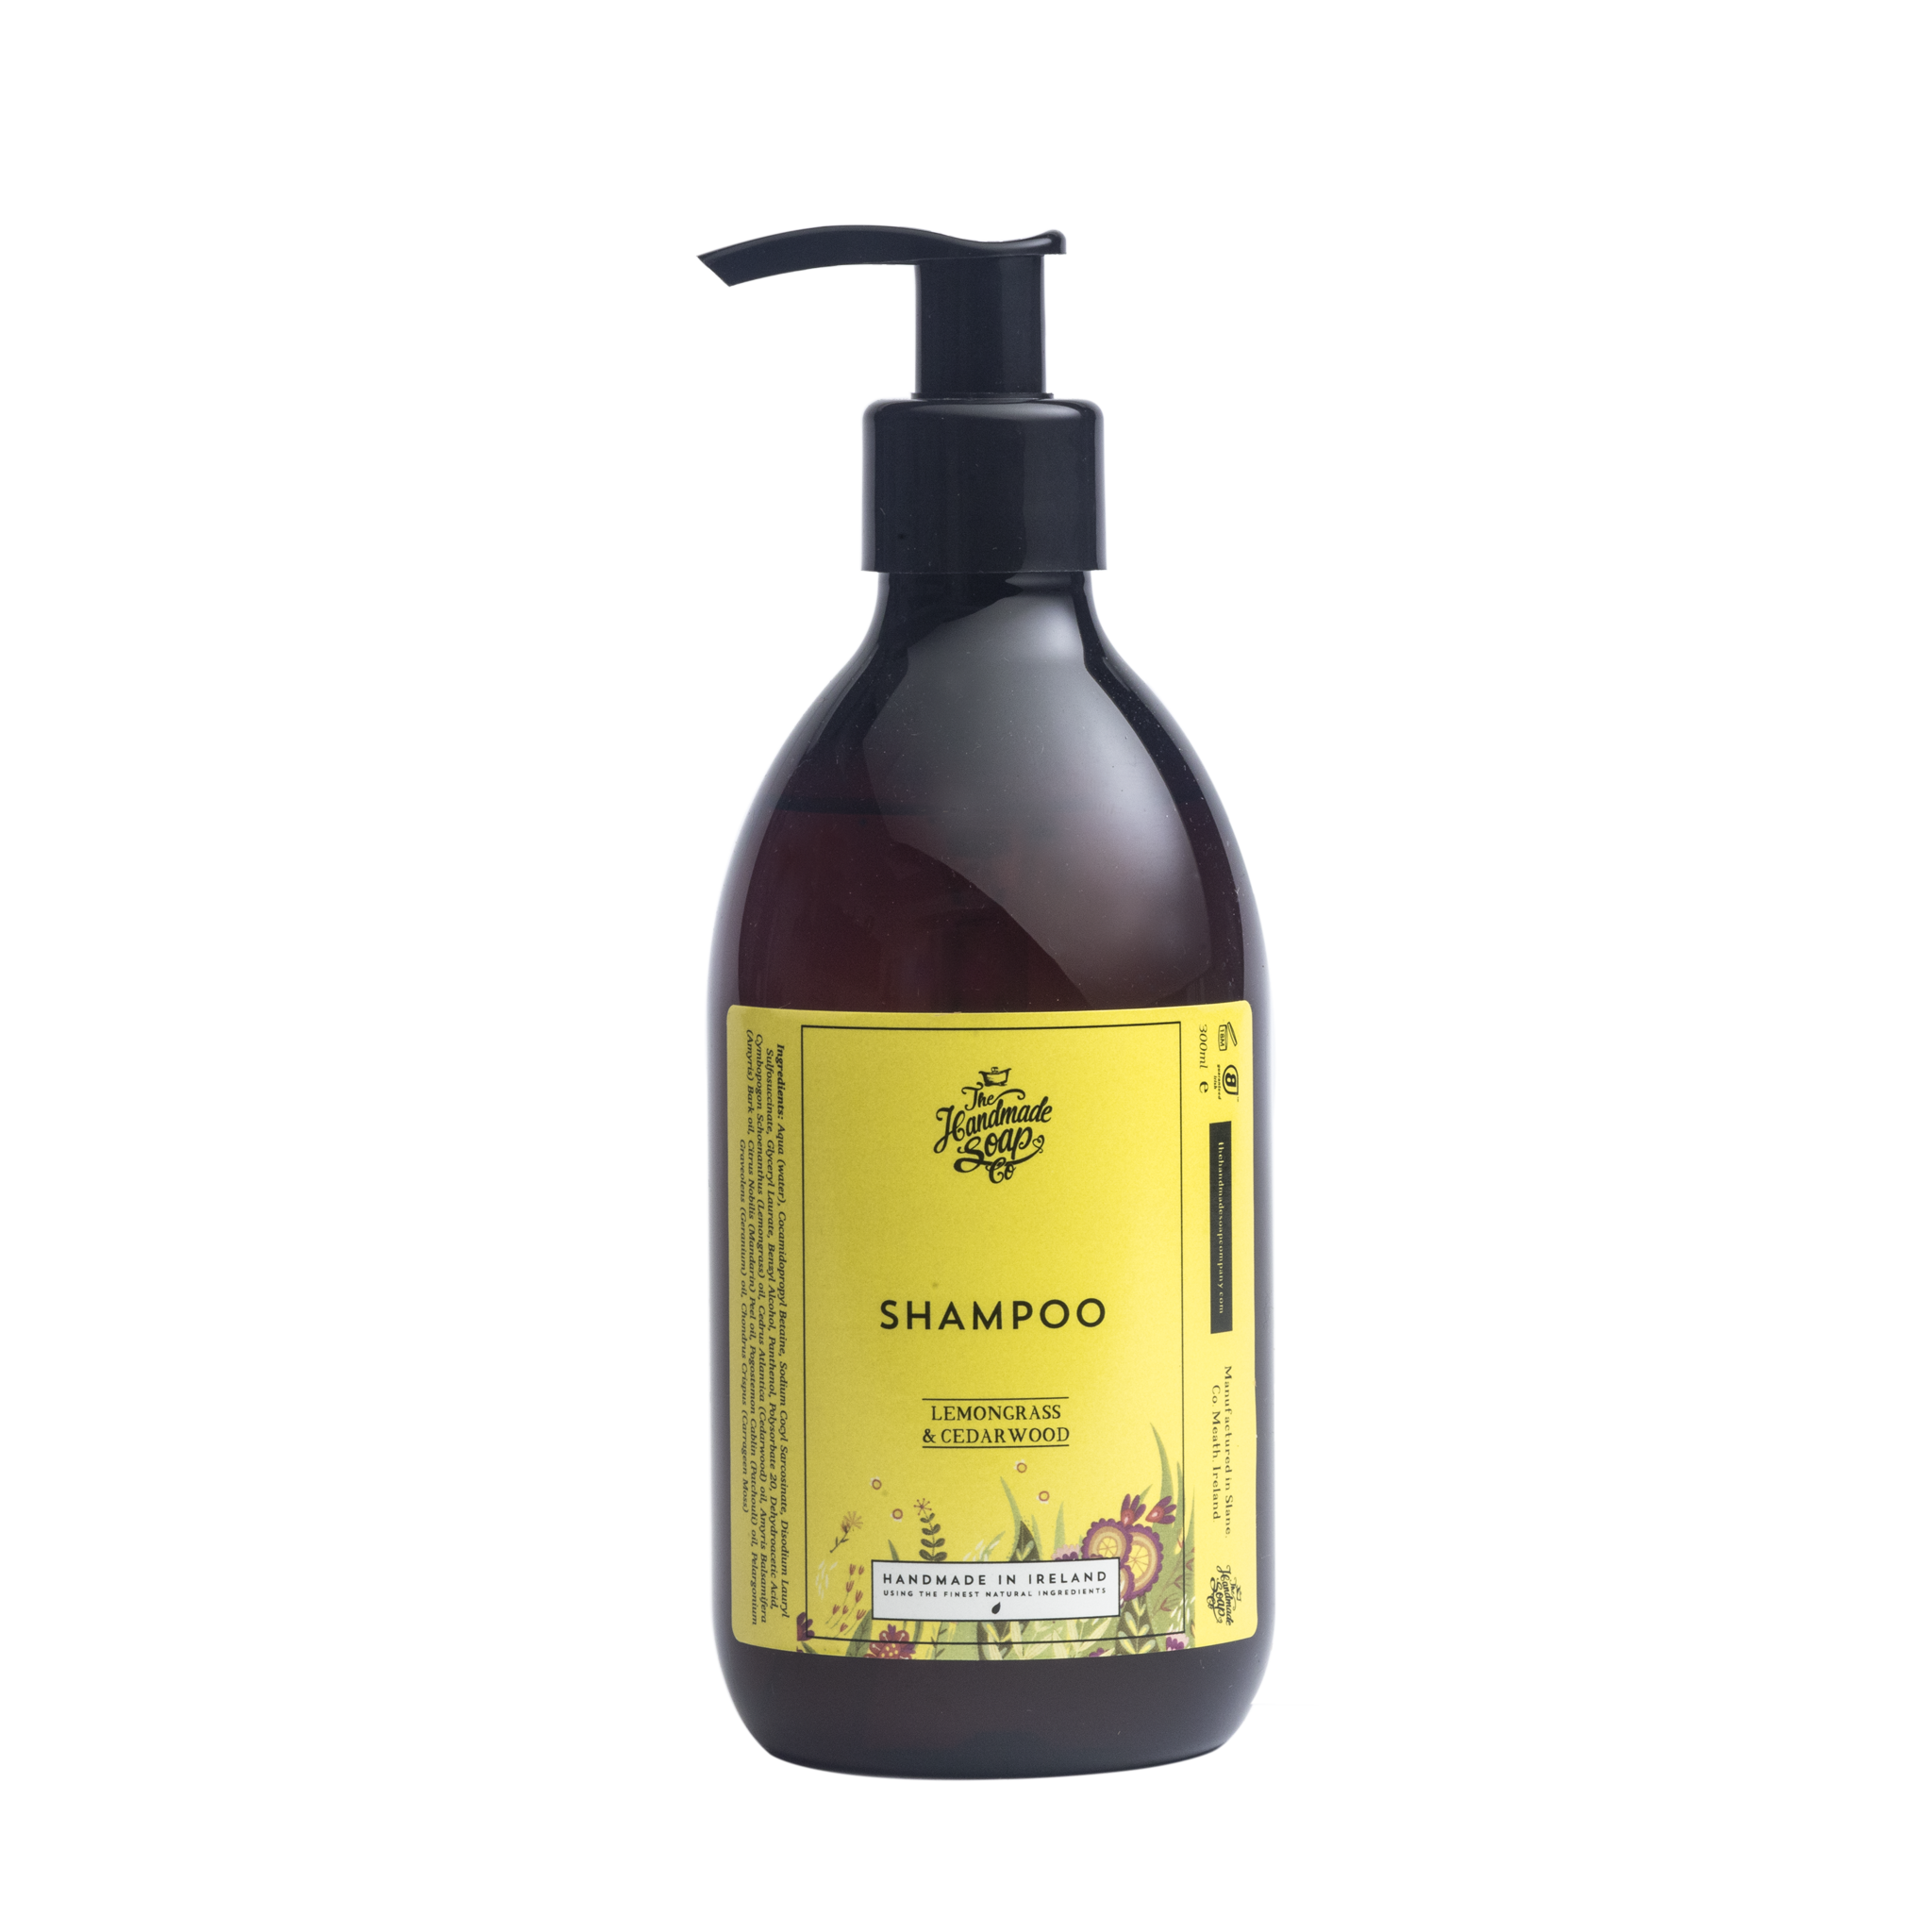 Soap transparent based. Plant shampoo with lemongrass